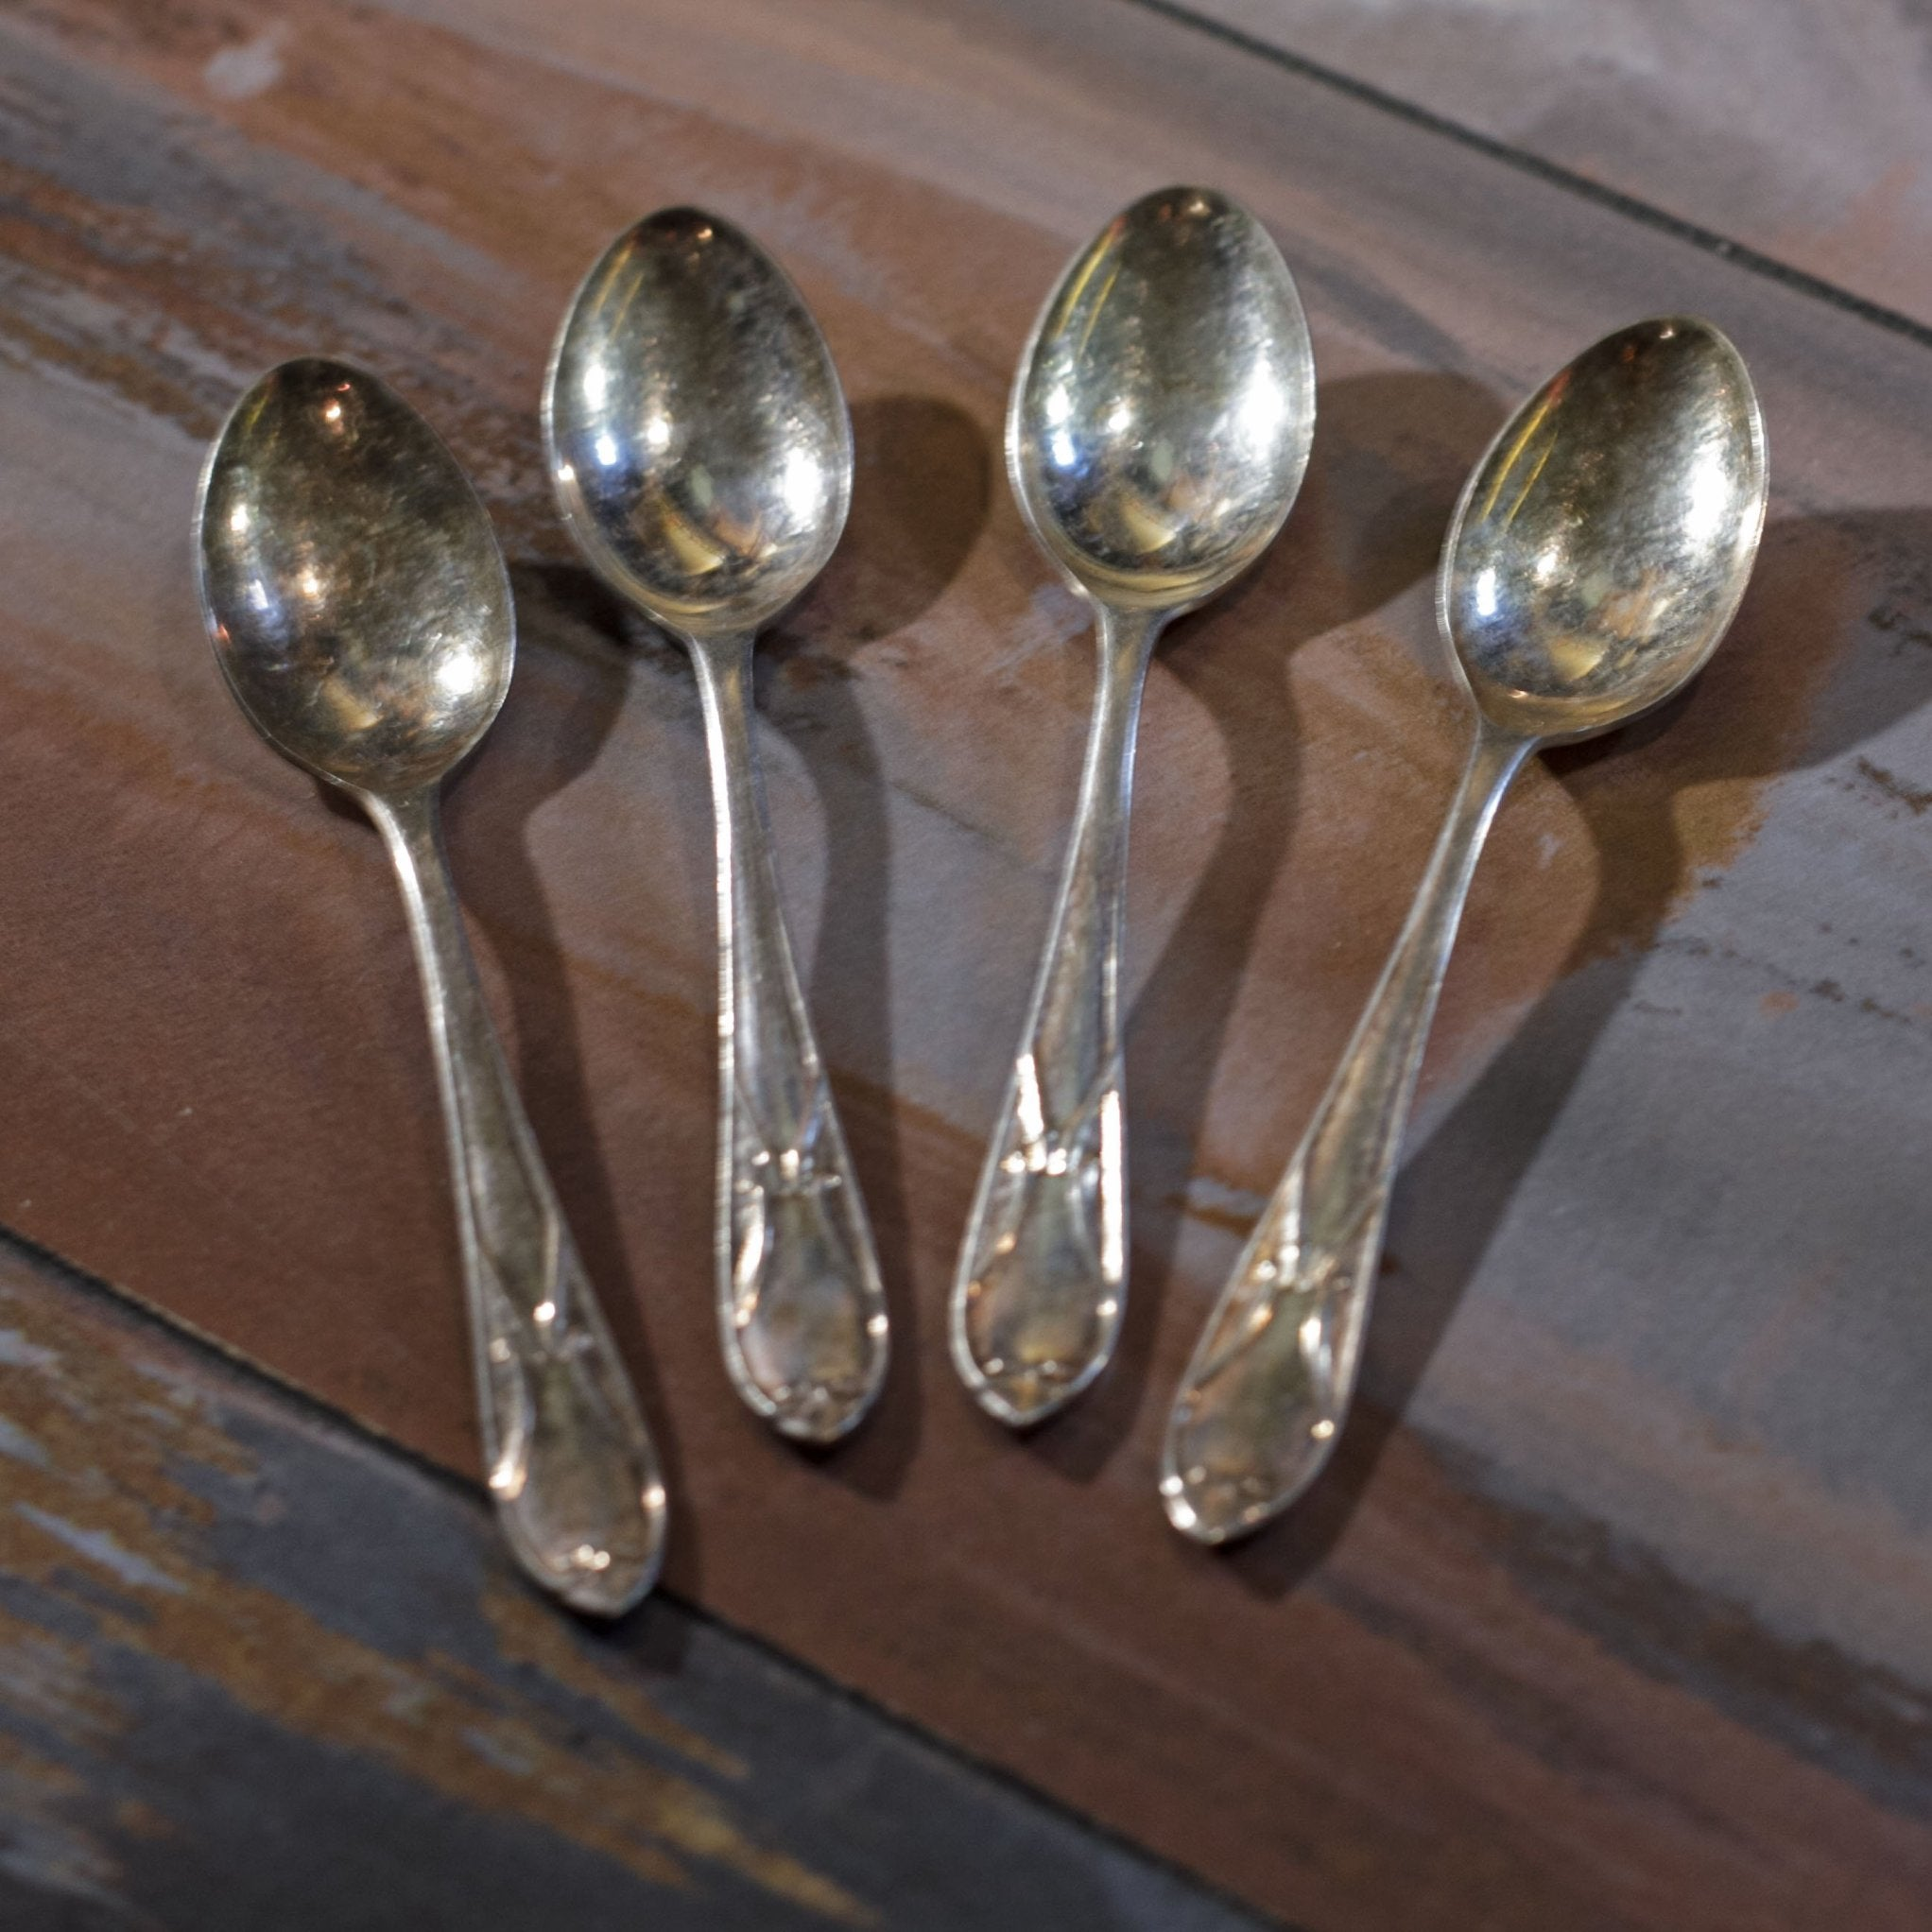 SHEFFIELD CRAFTSMAN SILVER PLATE DEMITASSE SPOONS Set of Four (4)